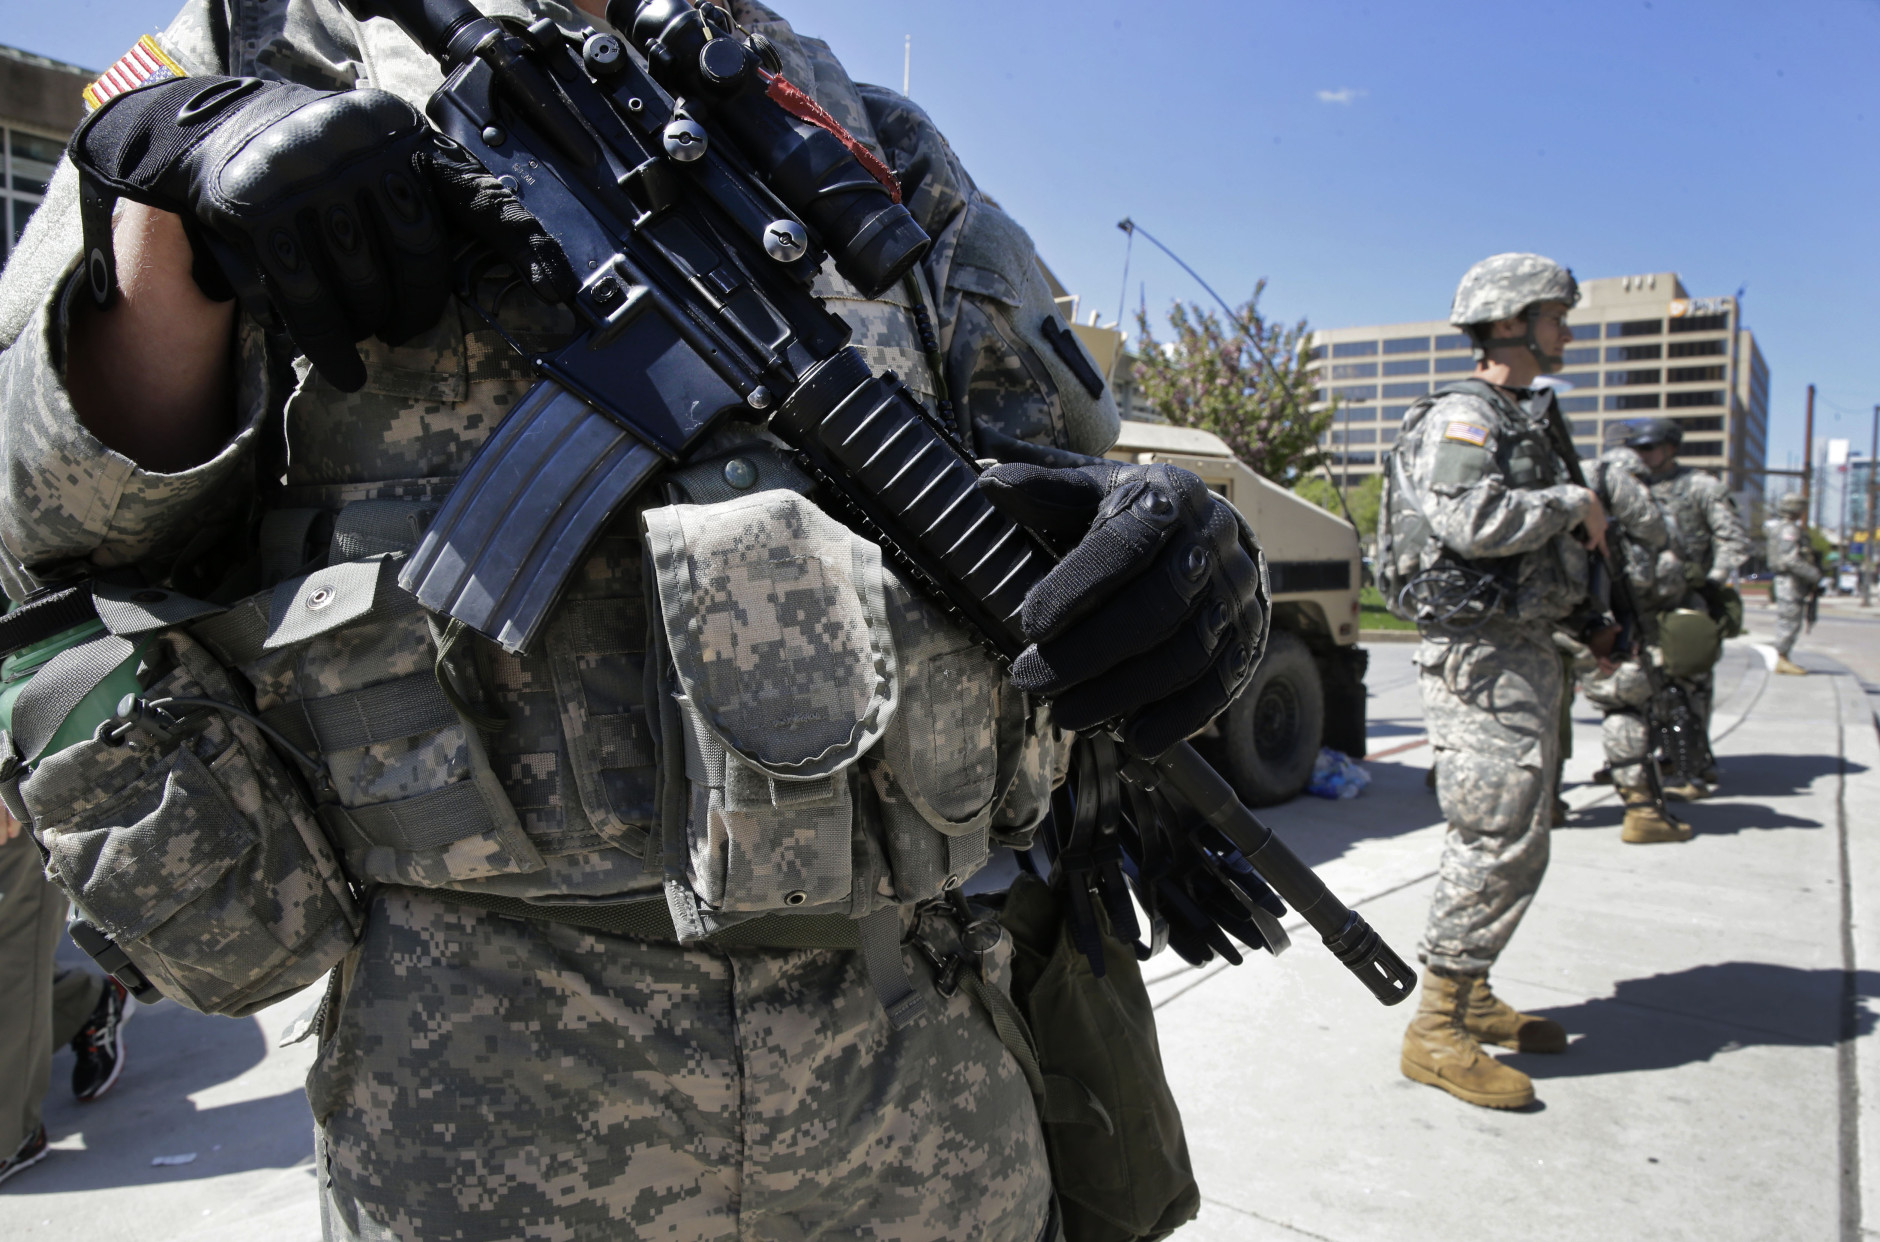 Maryland National Guardsmen patrol near downtown office buildings, Tuesday, April 28, 2015, in Baltimore, a day following unrest that occurred after Freddie Gray's funeral. Gray died from spinal injuries about a week after he was arrested and transported in a Baltimore Police Department van. His death has become the latest flashpoint in the nation's debate over the police use of force against black men. (AP Photo/Patrick Semansky)